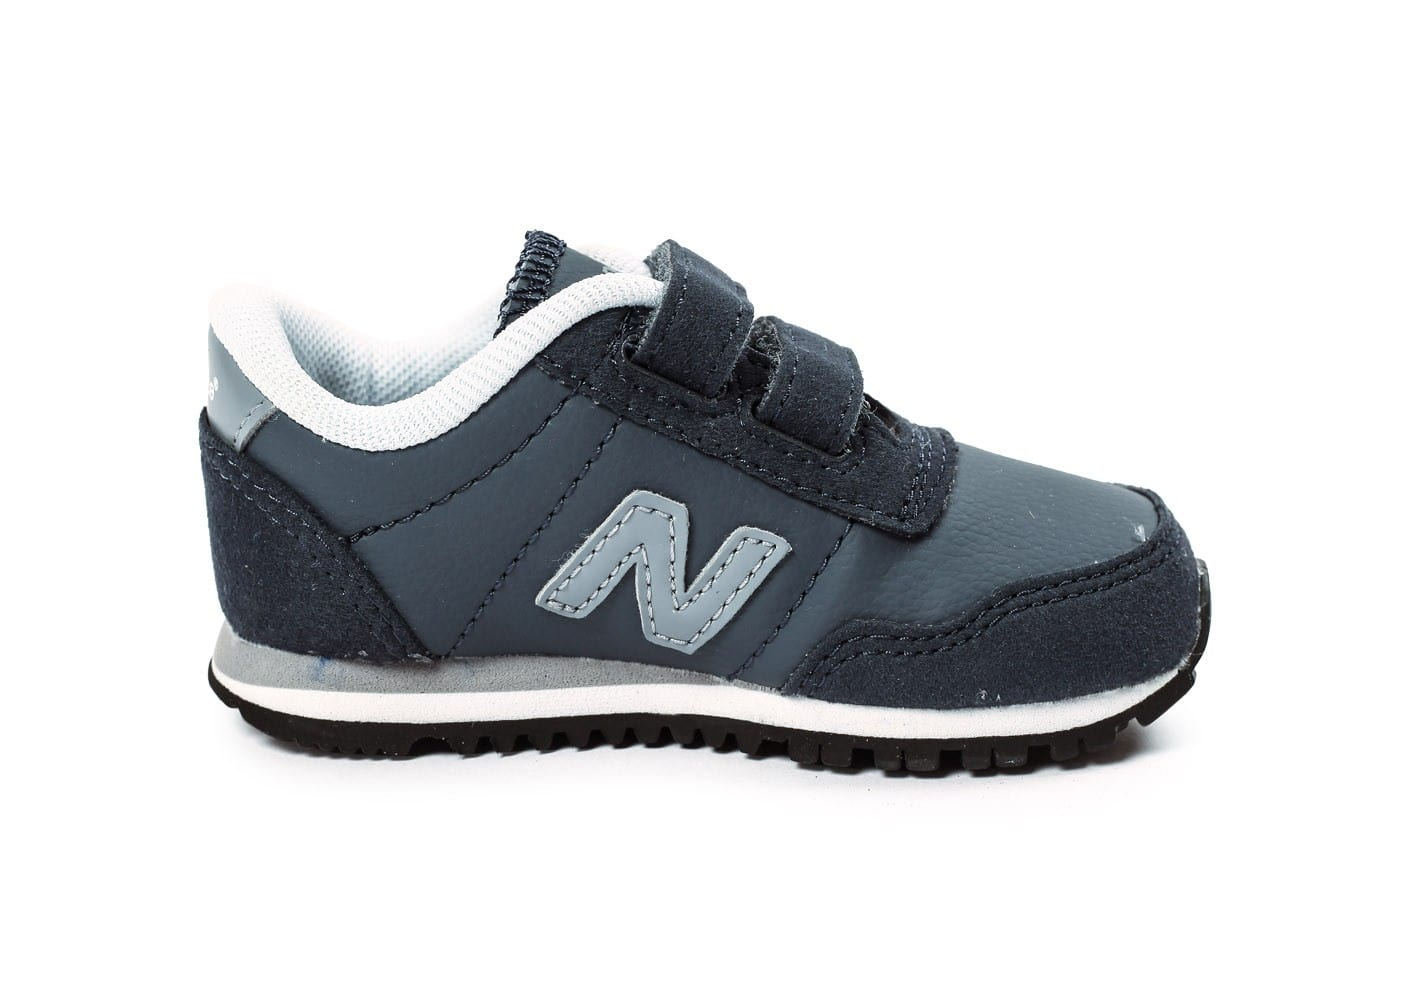 new balance kv 396 grise chaussures chaussures chausport. Black Bedroom Furniture Sets. Home Design Ideas